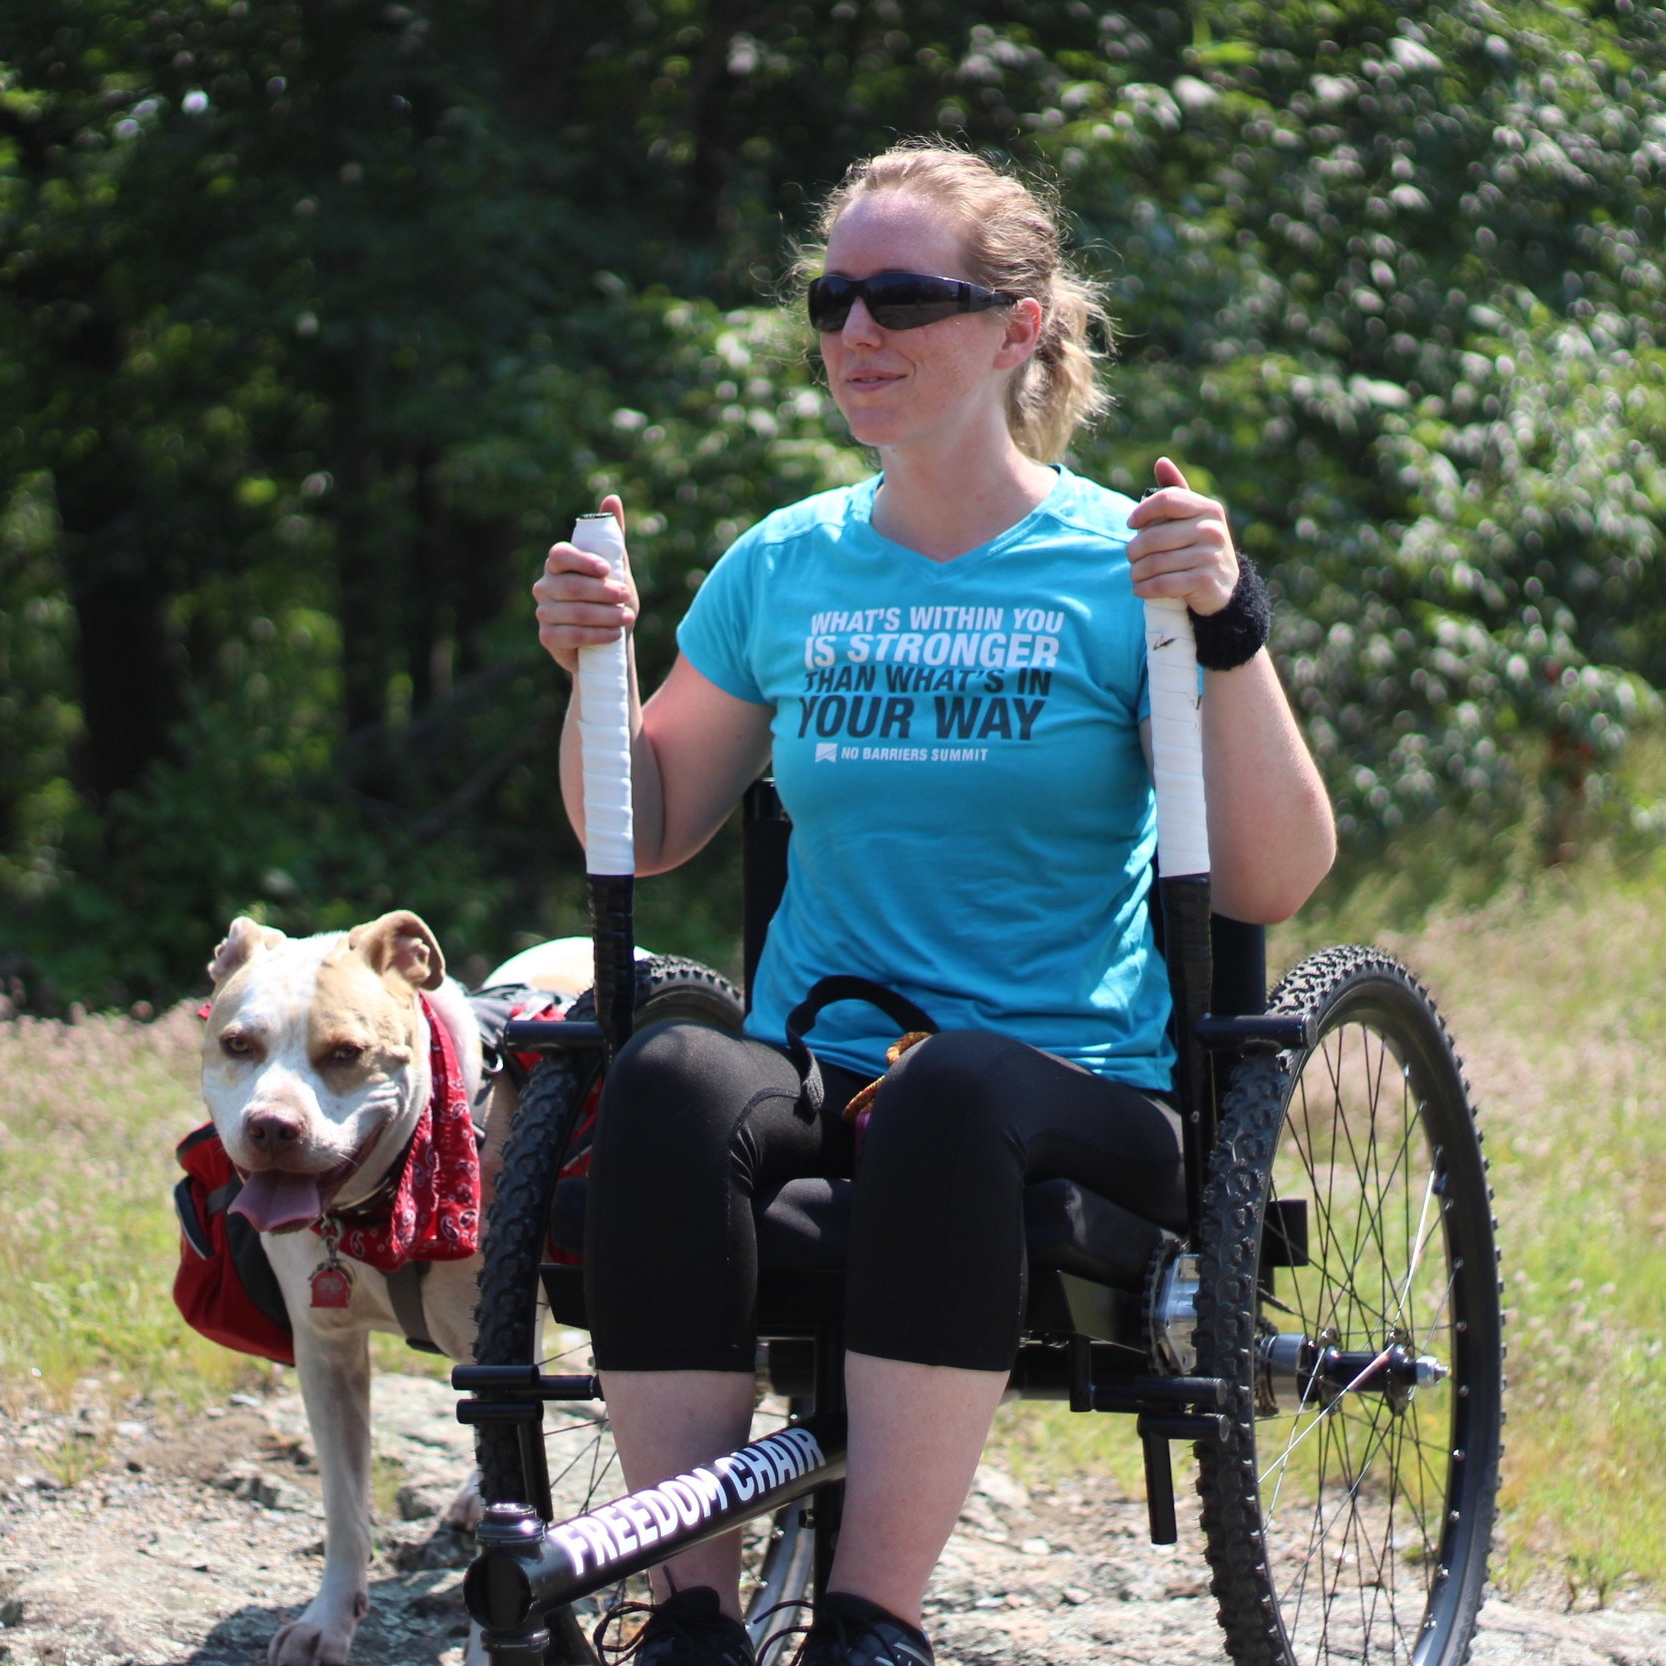 As my condition progressed, and I started using a wheelchair, I noticed a significant change in how my abilities were perceived. The reality is, I became MUCH more mobile and independent with my wheelchair than I was with any sort of walking aid.    - Nerissa    Read more about Nerissa